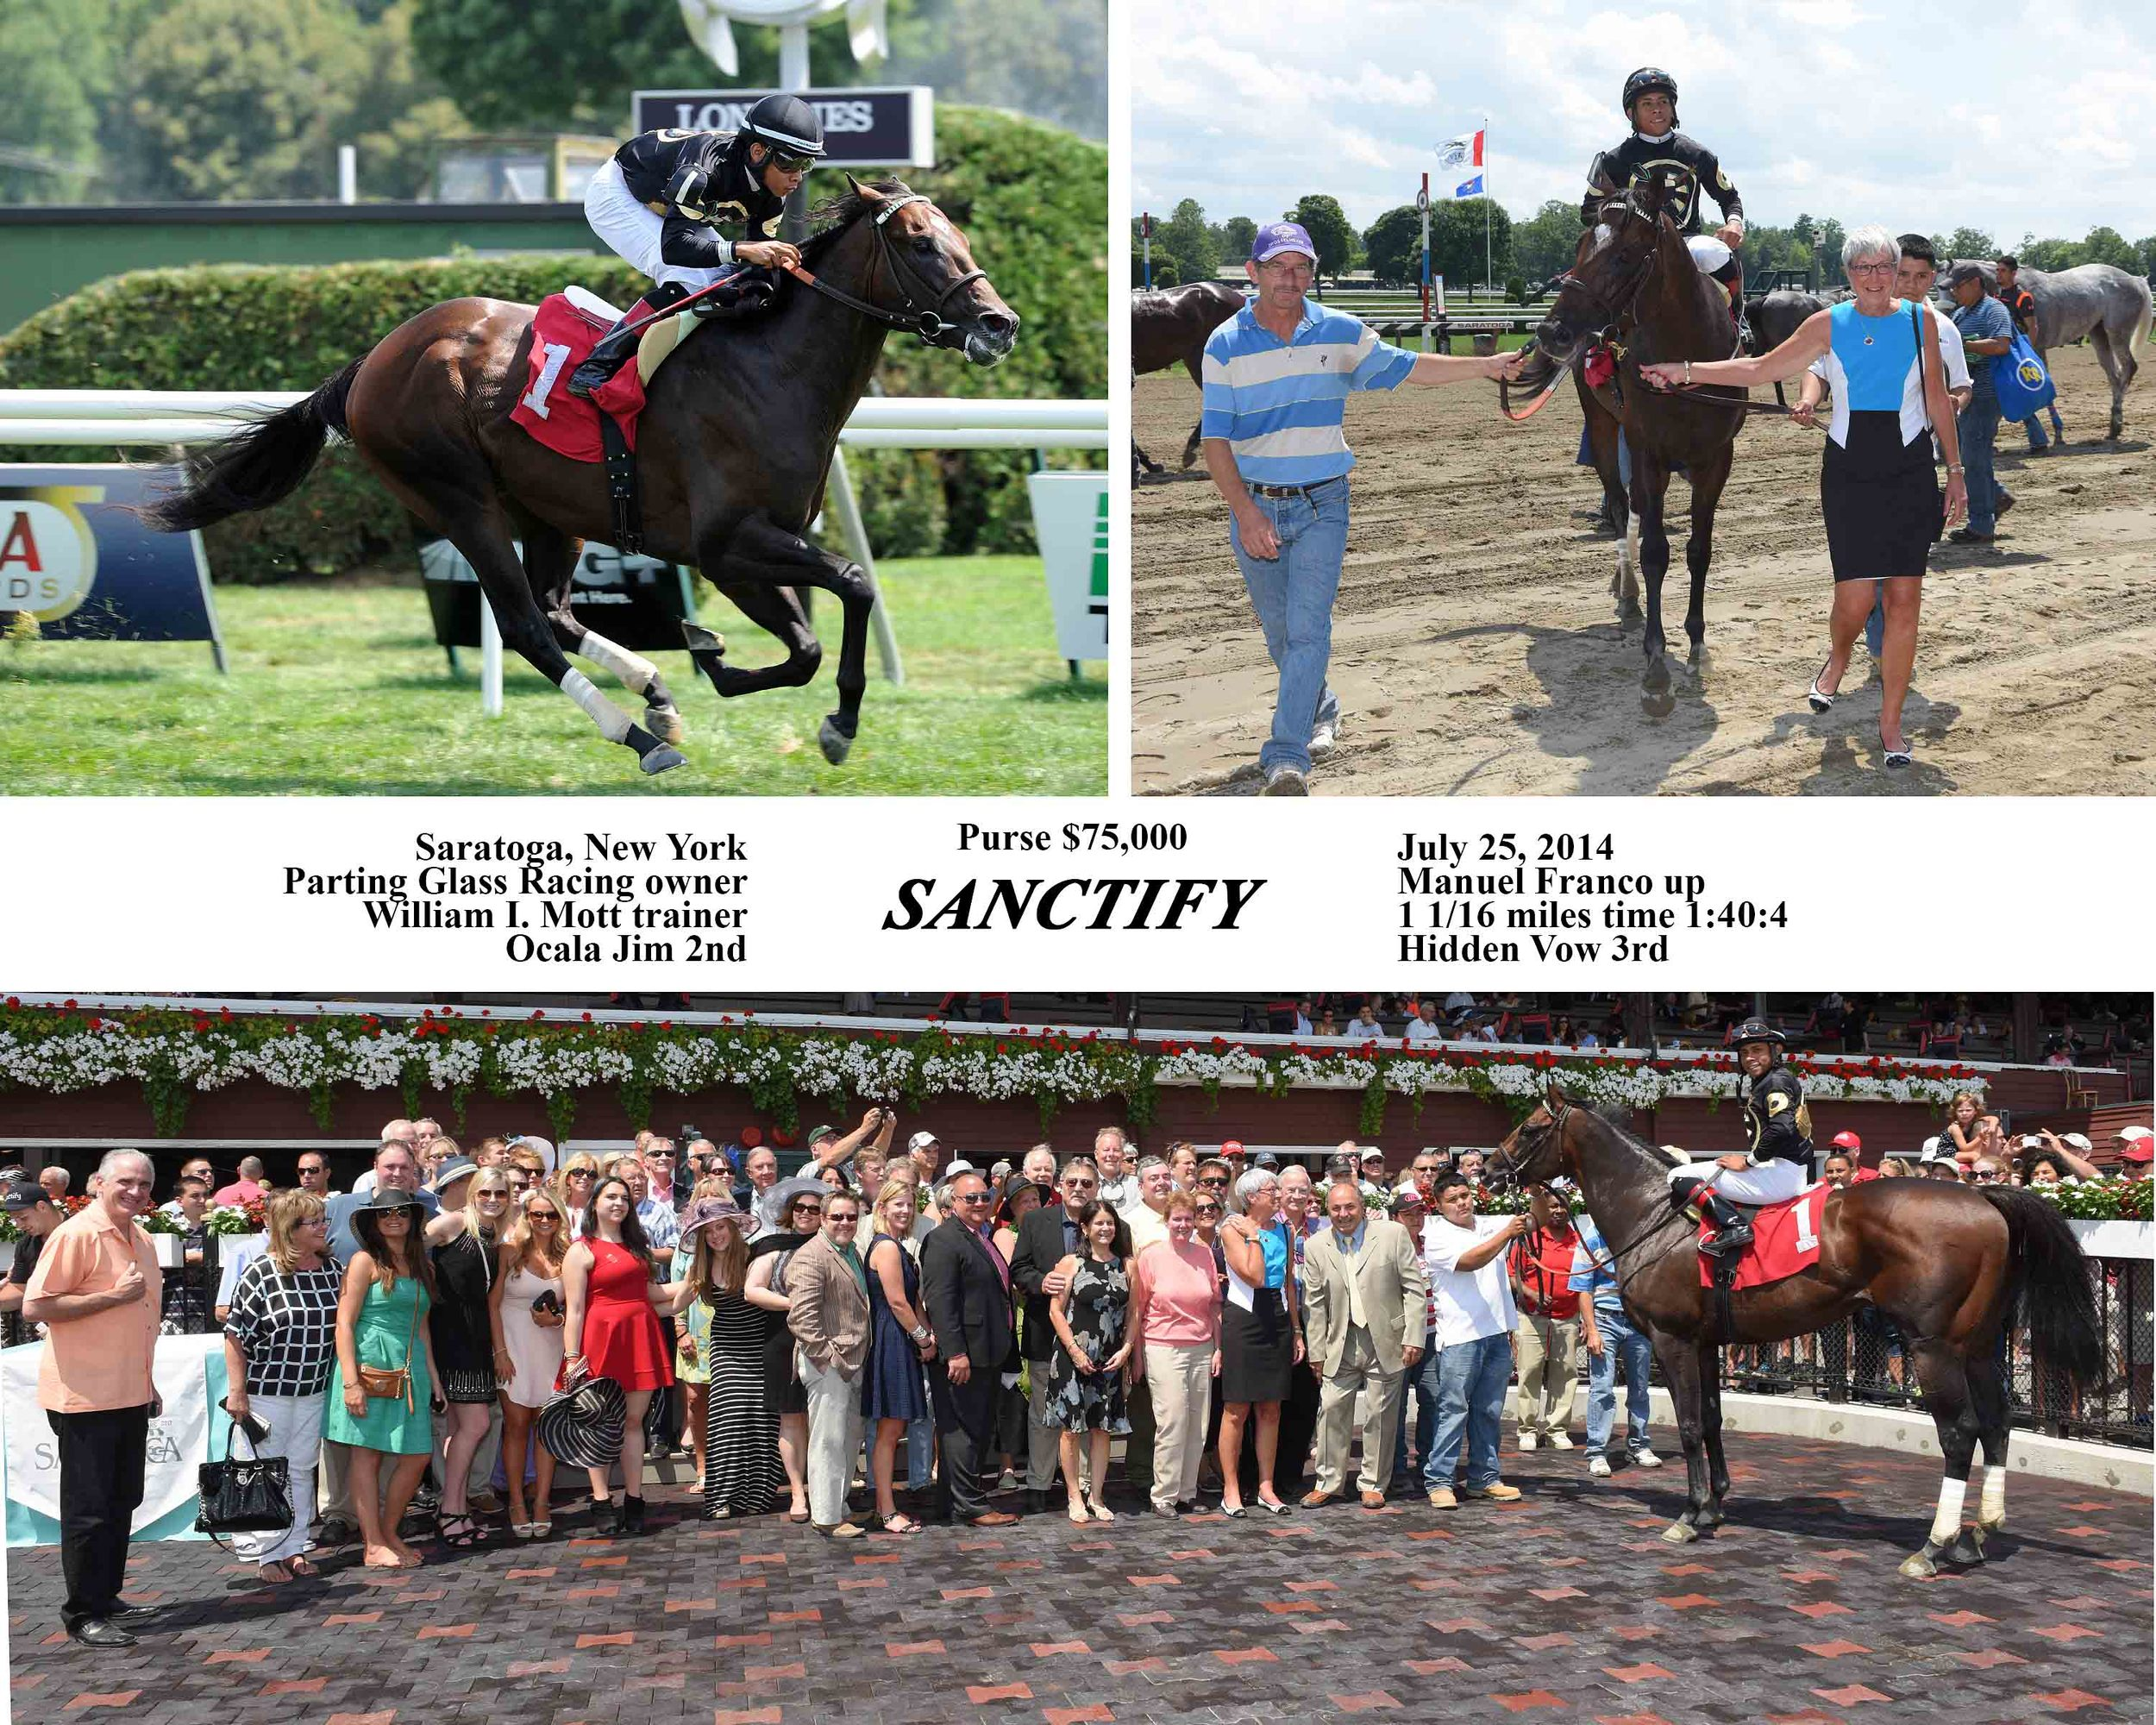 Sanctify WIN picture - 7.26.14 - The Spa.jpg